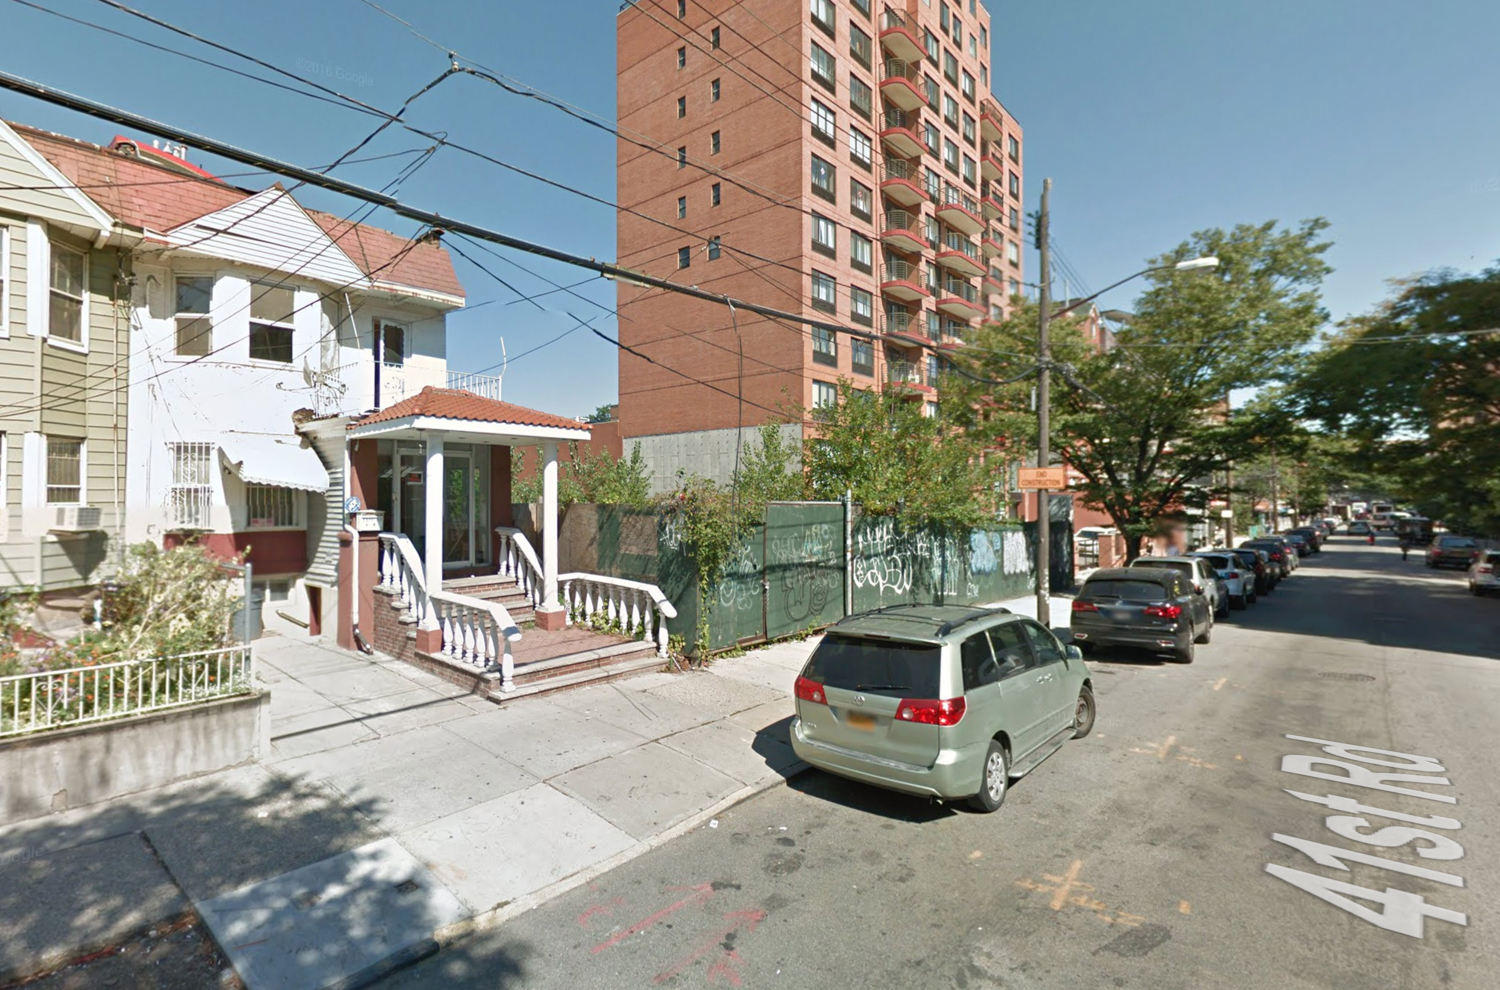 132-27 41st Road, via Google Maps